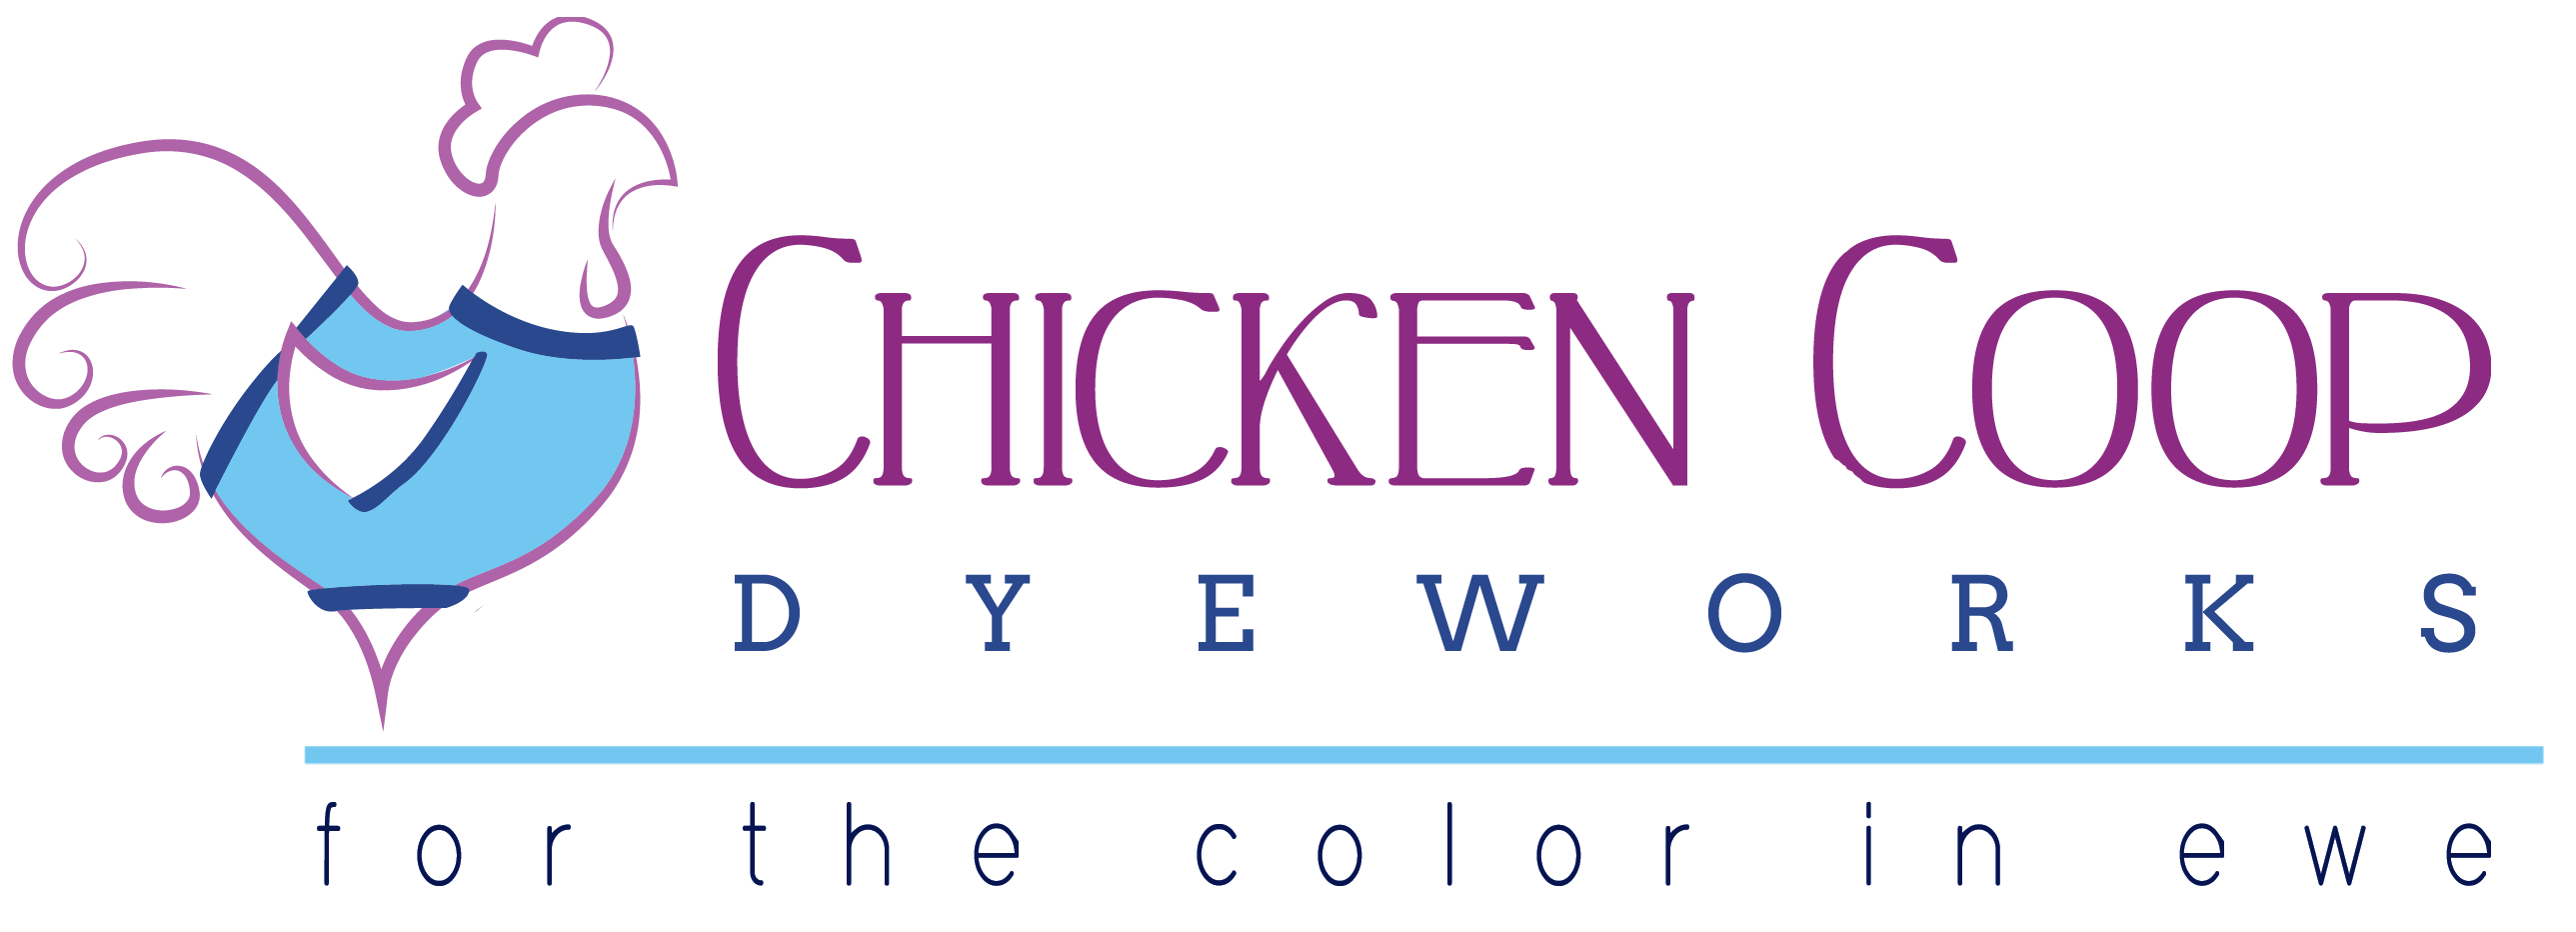 Chicken Coop Dyeworks - For the Color in Ewe